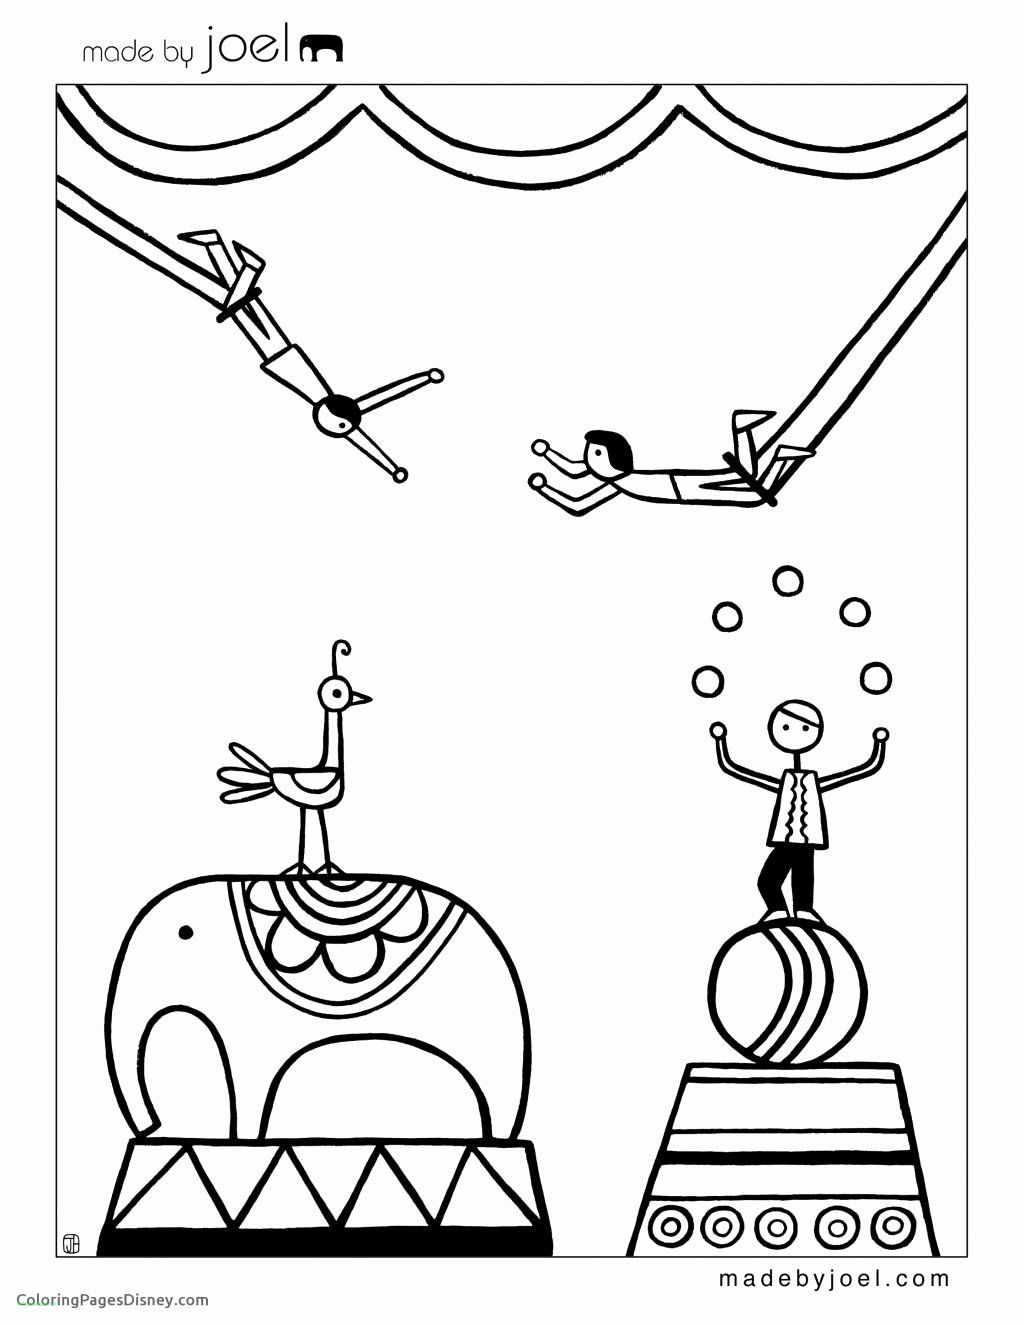 Thanksgiving Coloring Activity Sheets Unique Printable Coloring Sheets For Boys Fresh Kindergarte In 2020 Disney Coloring Pages Printable Coloring Pages Coloring Pages